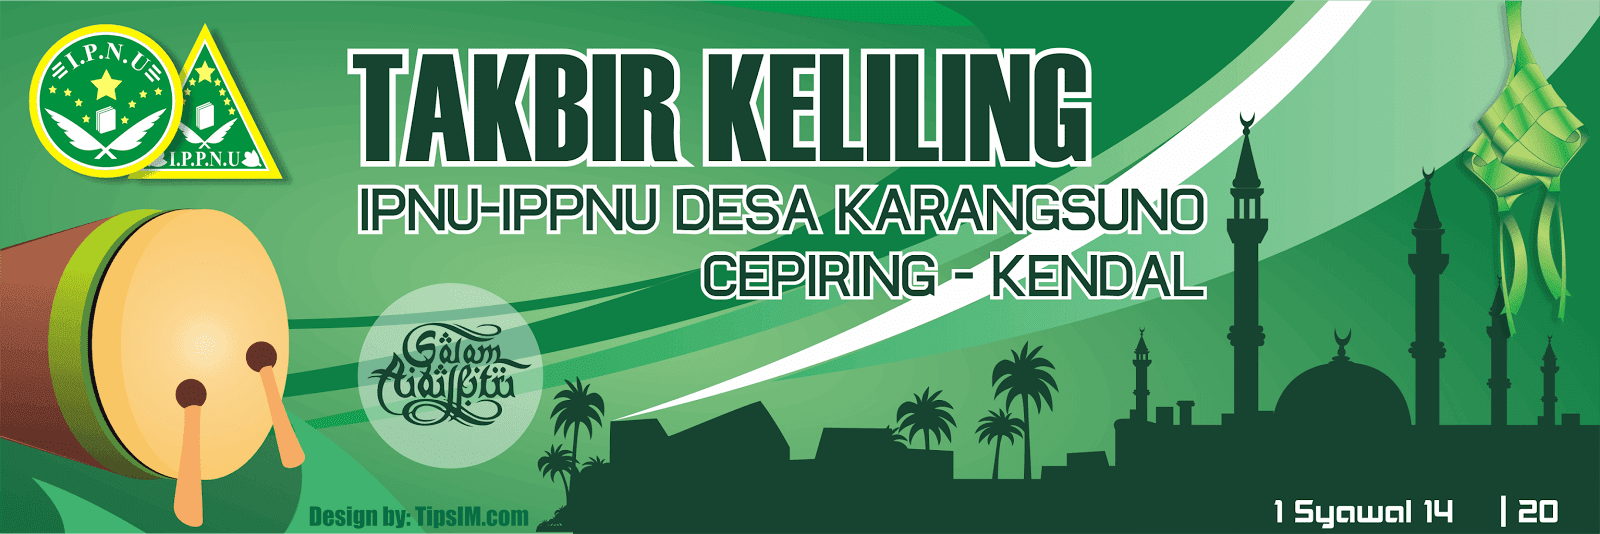 Download Design Spanduk/MMT Takbir Keliling (.cdr)